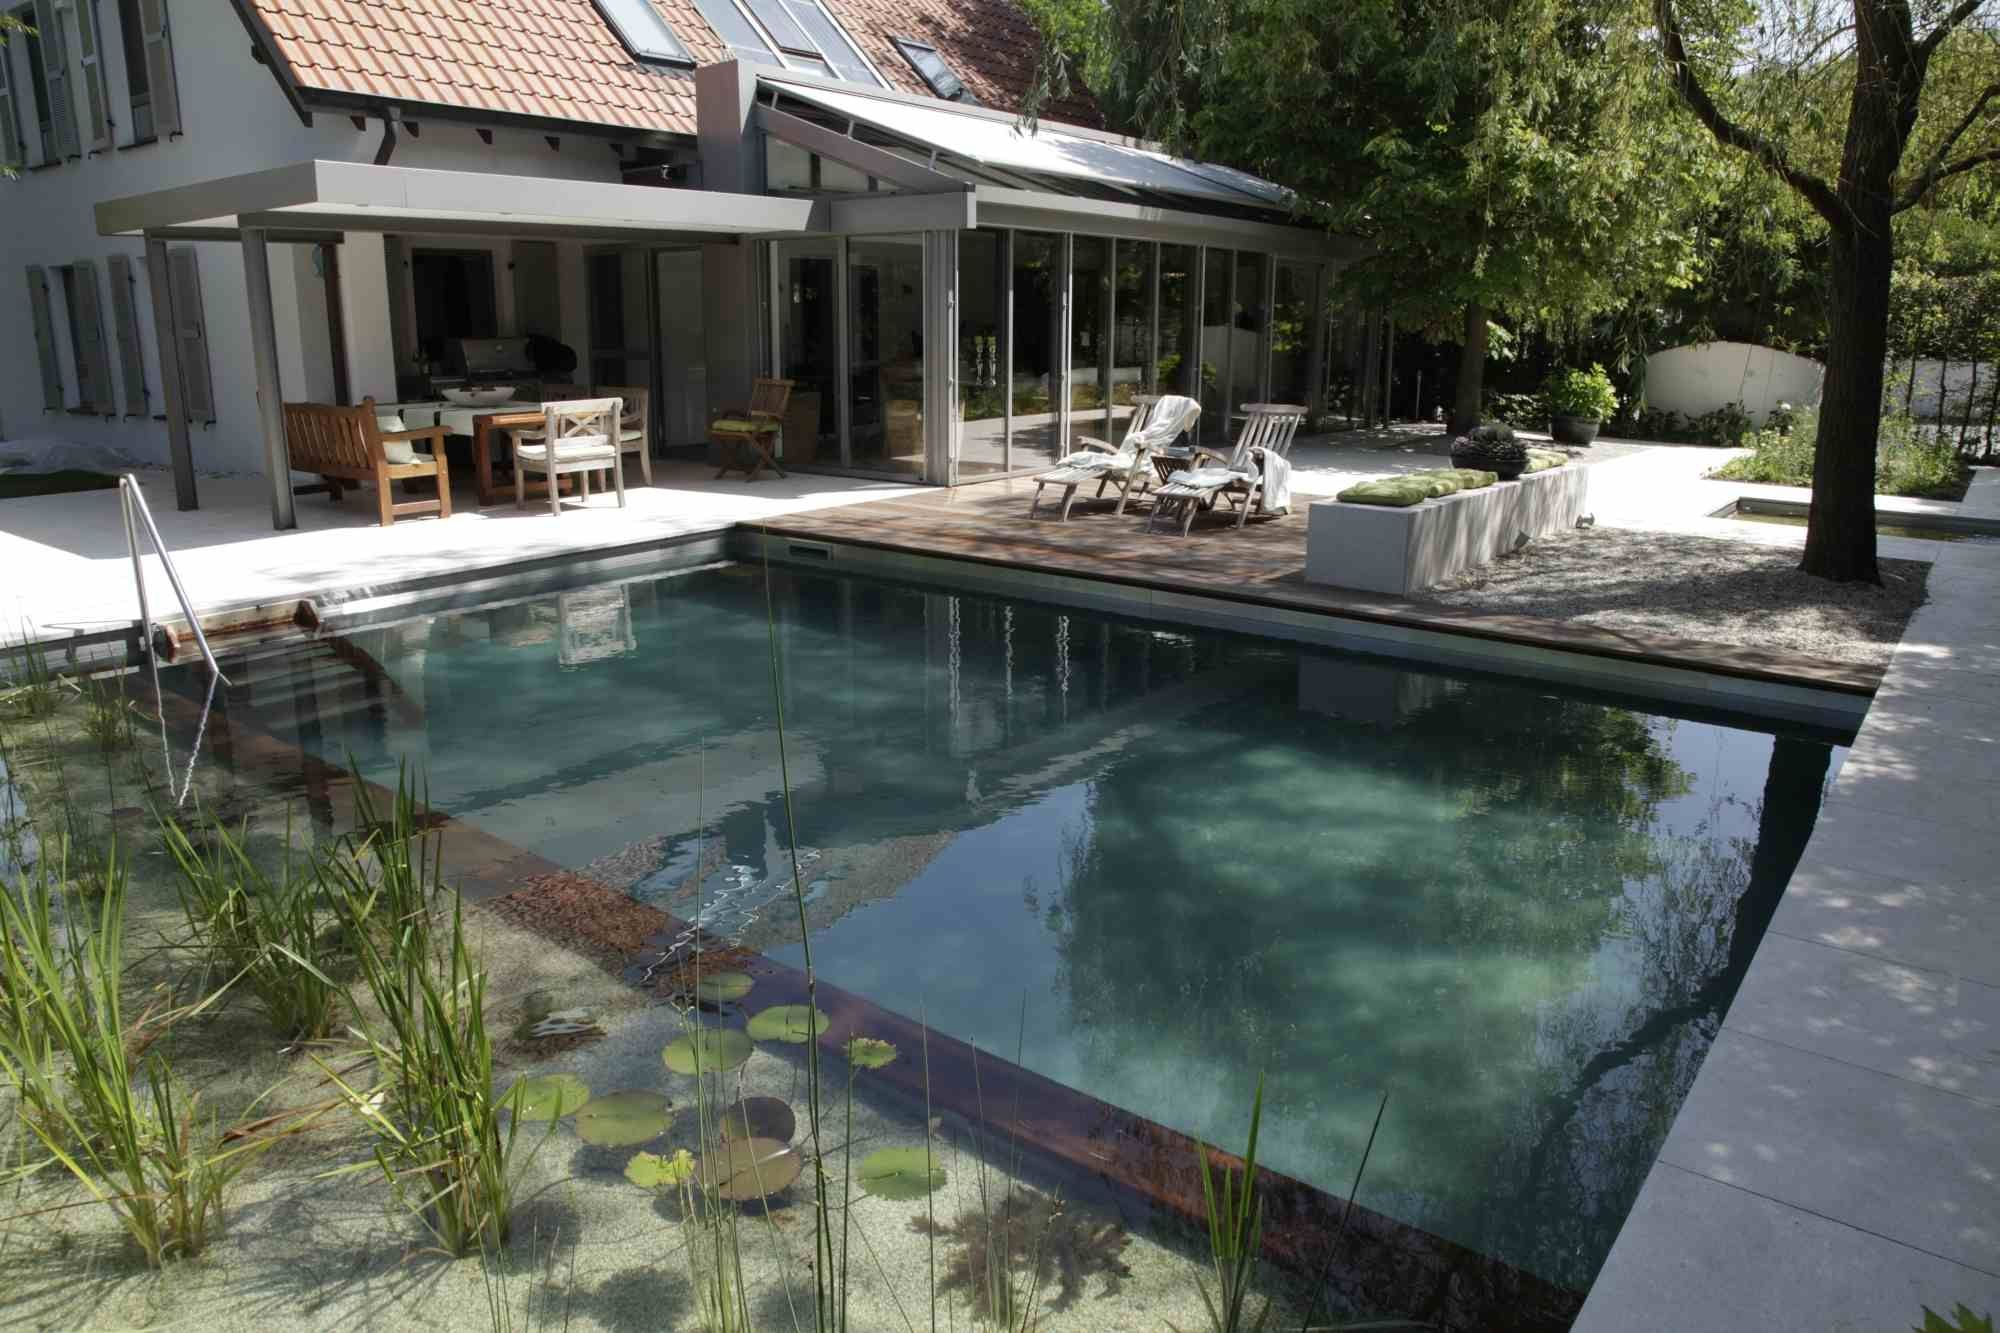 Pool Garten Winter We Are Planing Our Natural Swimming Pool Low Maintenance Low Cost